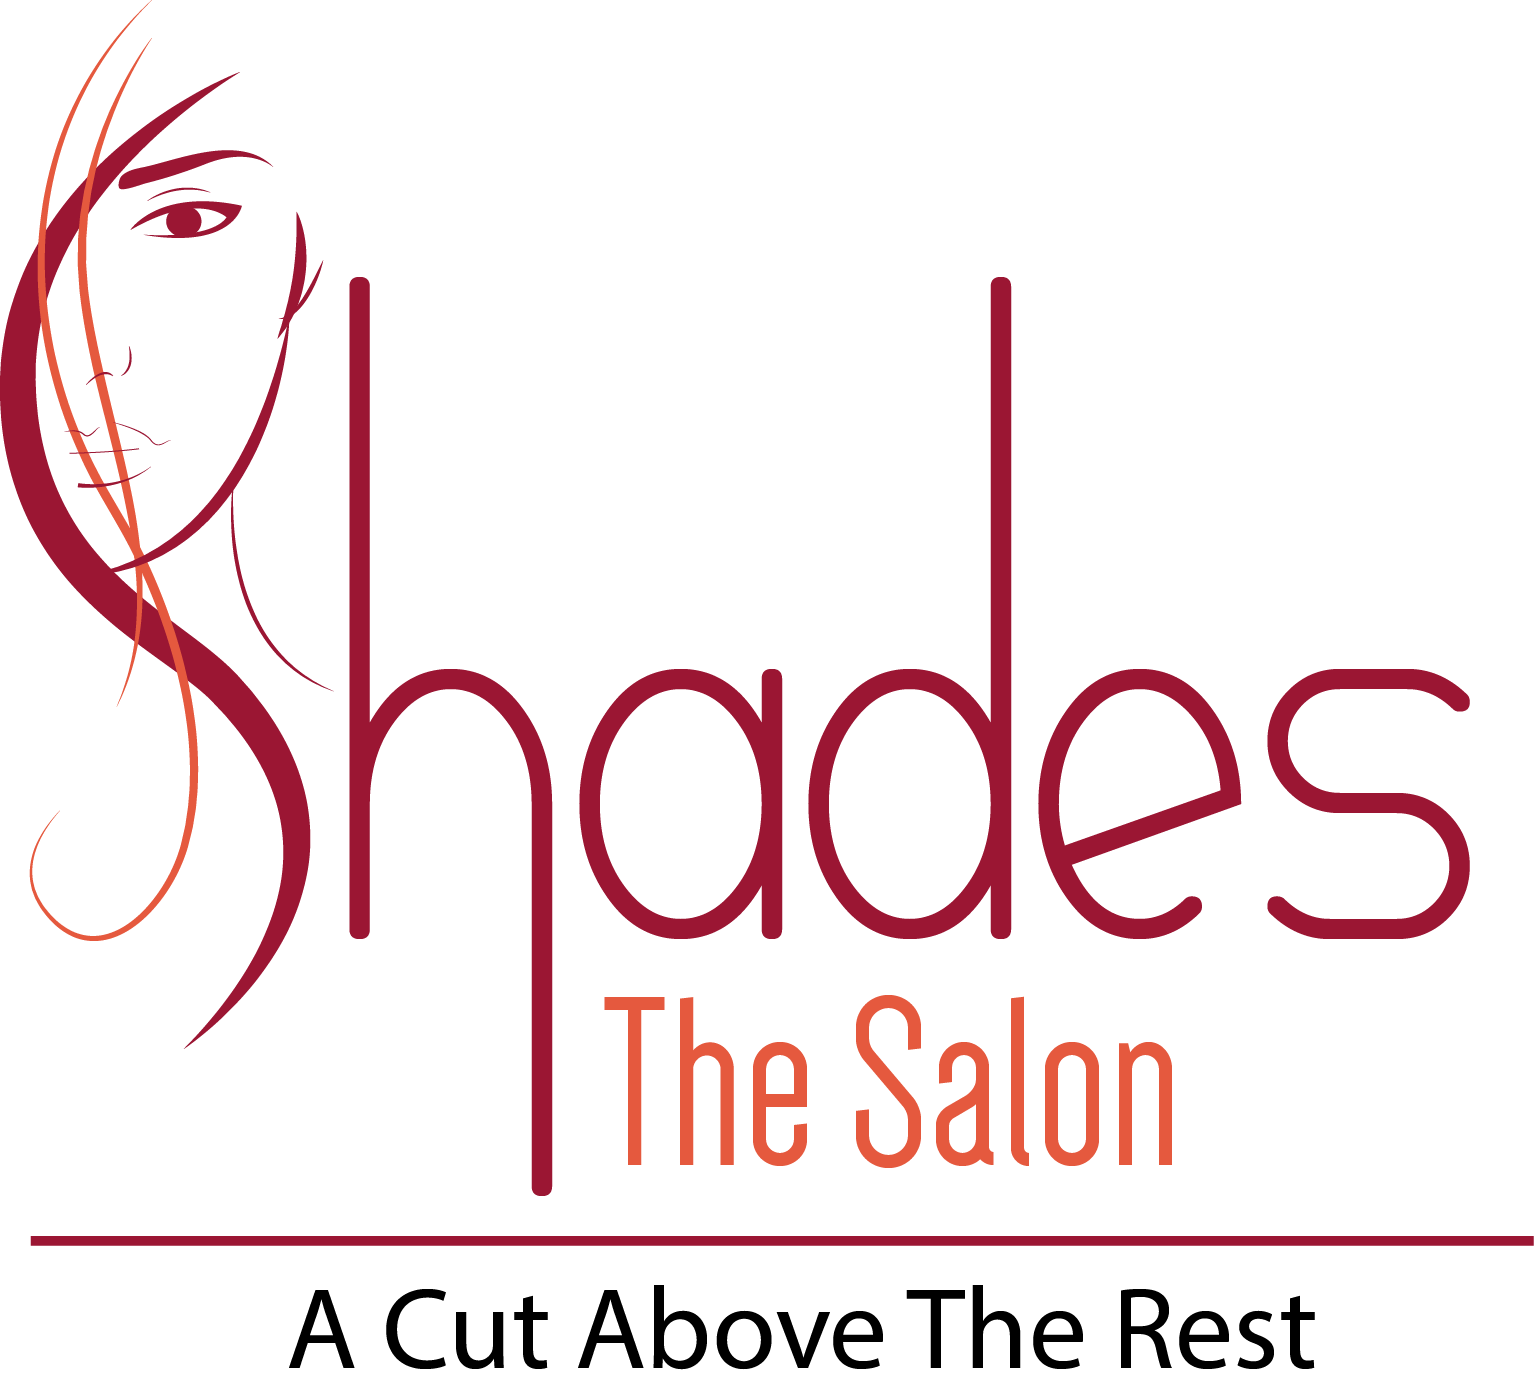 Shades The Salon